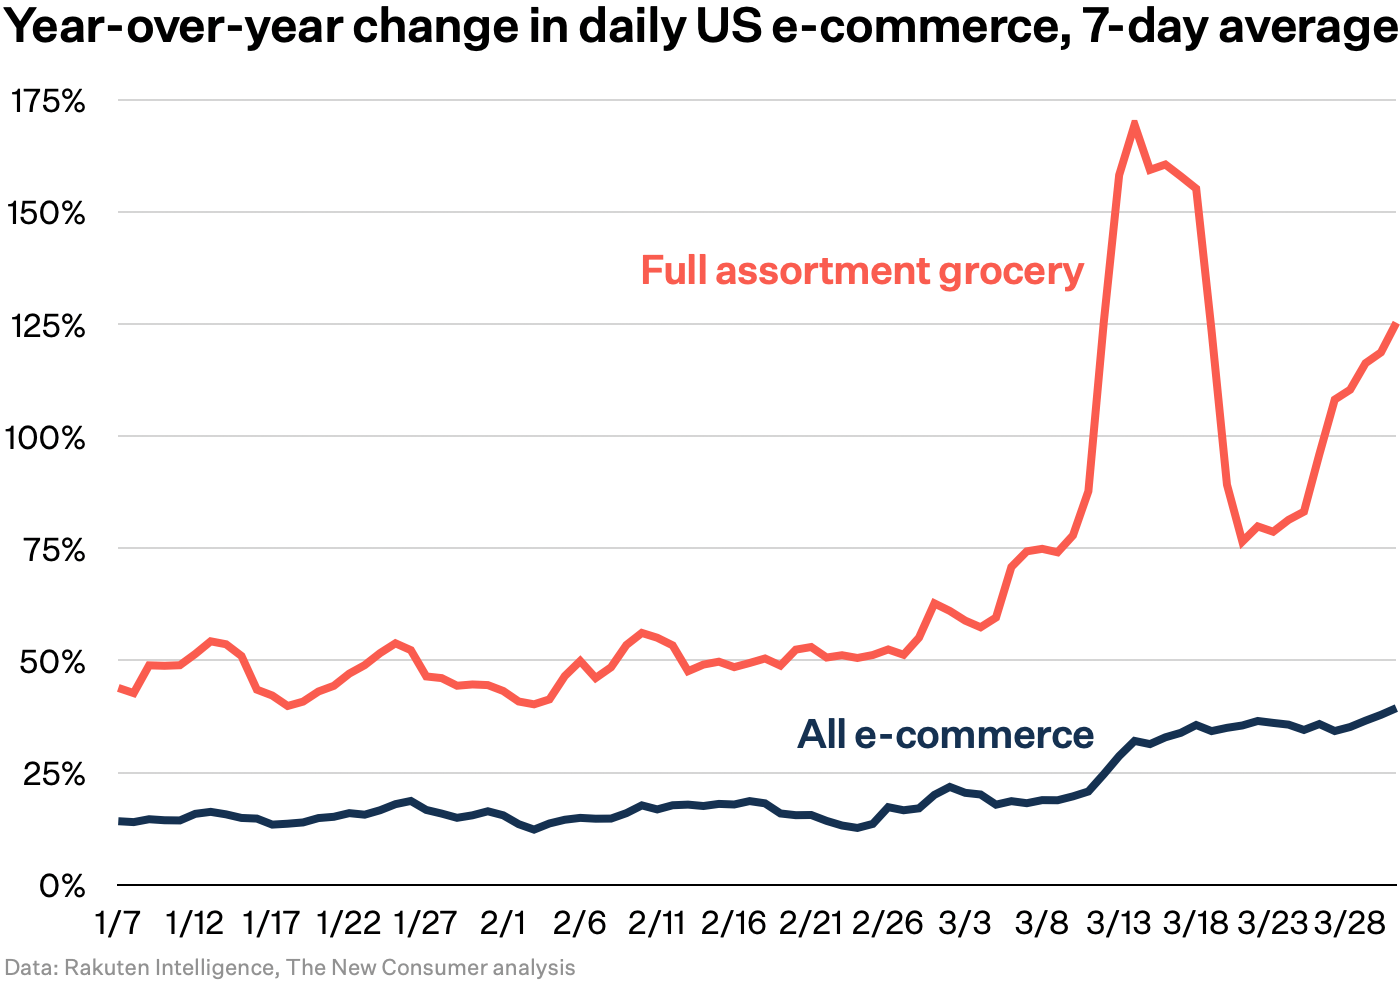 Year-over-year change in daily US e-commerce chart